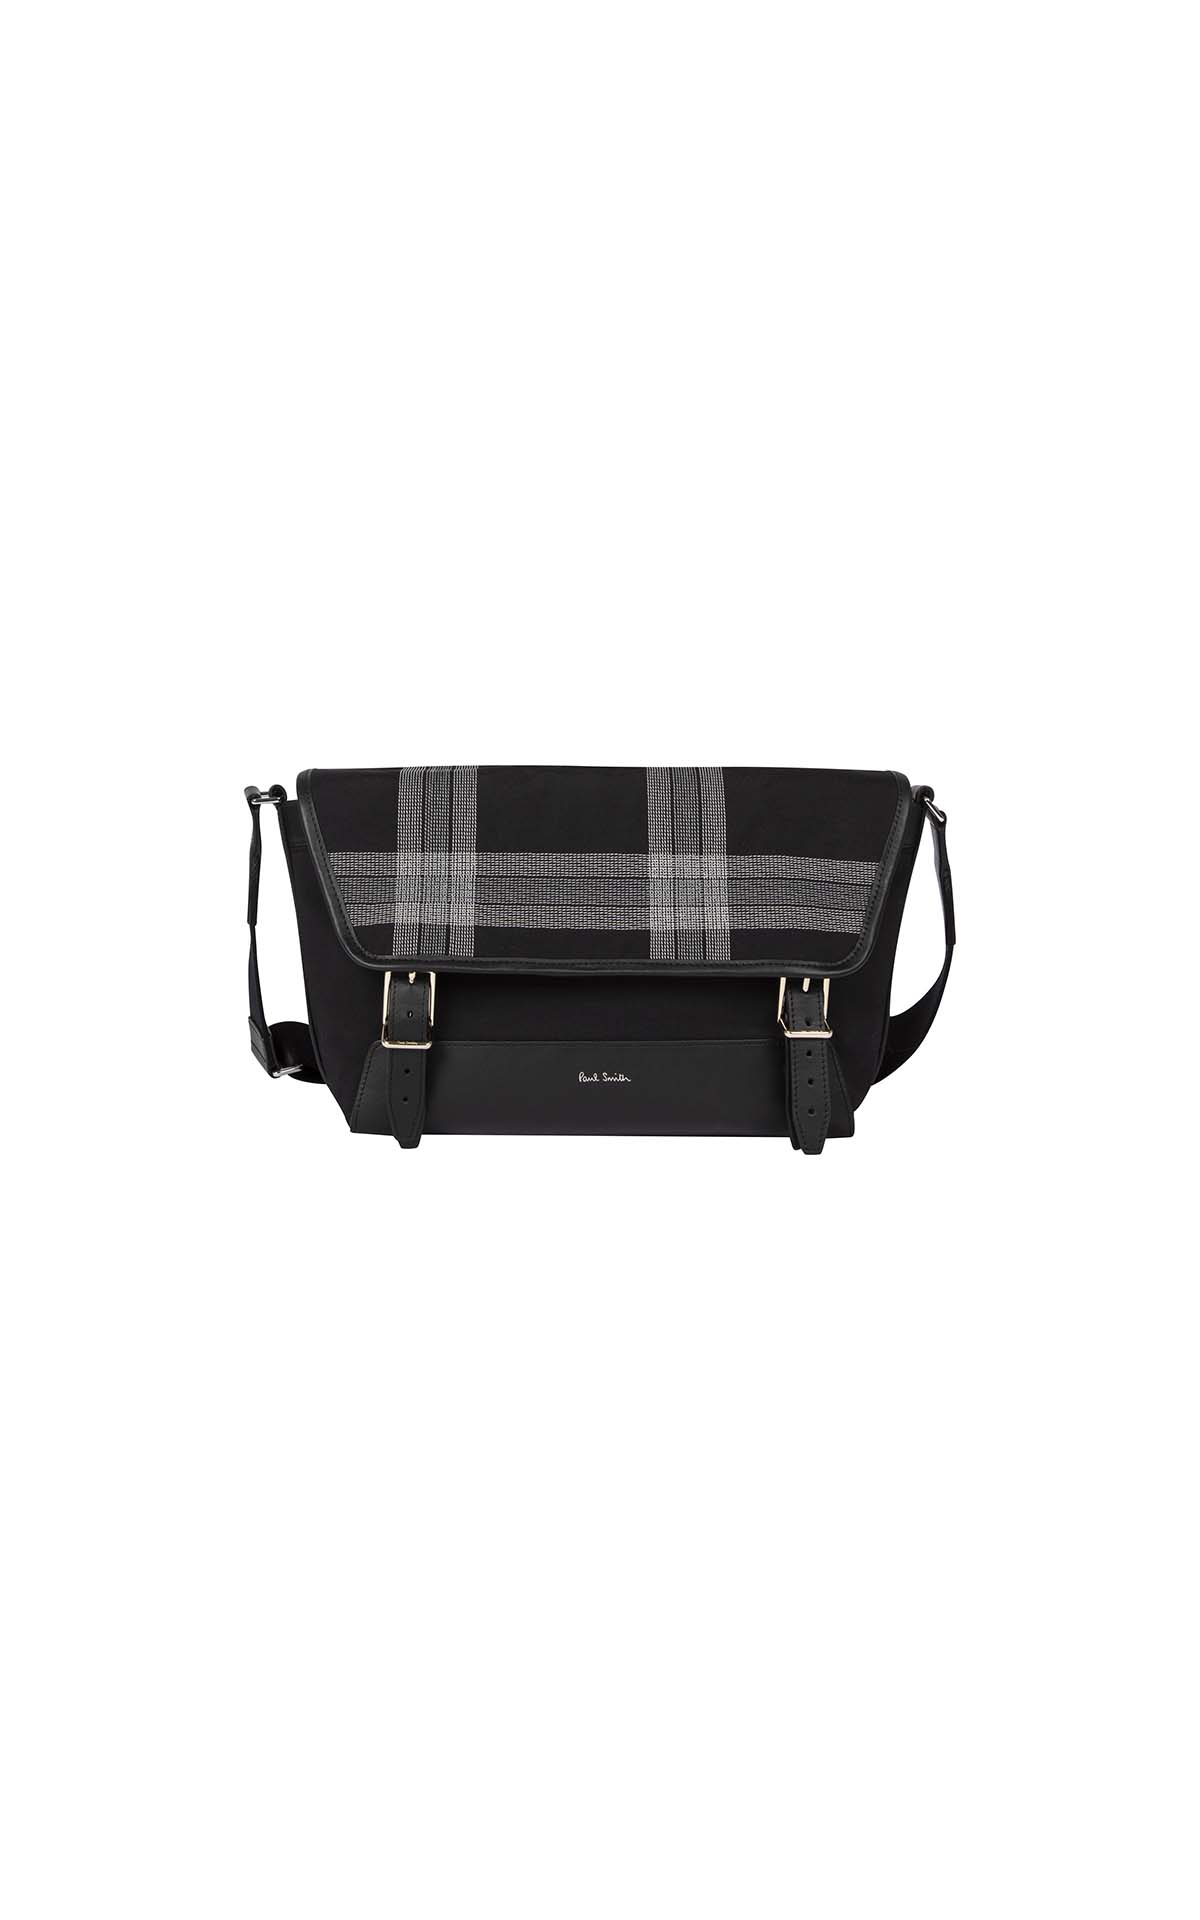 Paul Smith Men's Checked Black Bag at The Bicester Village Shopping Collection